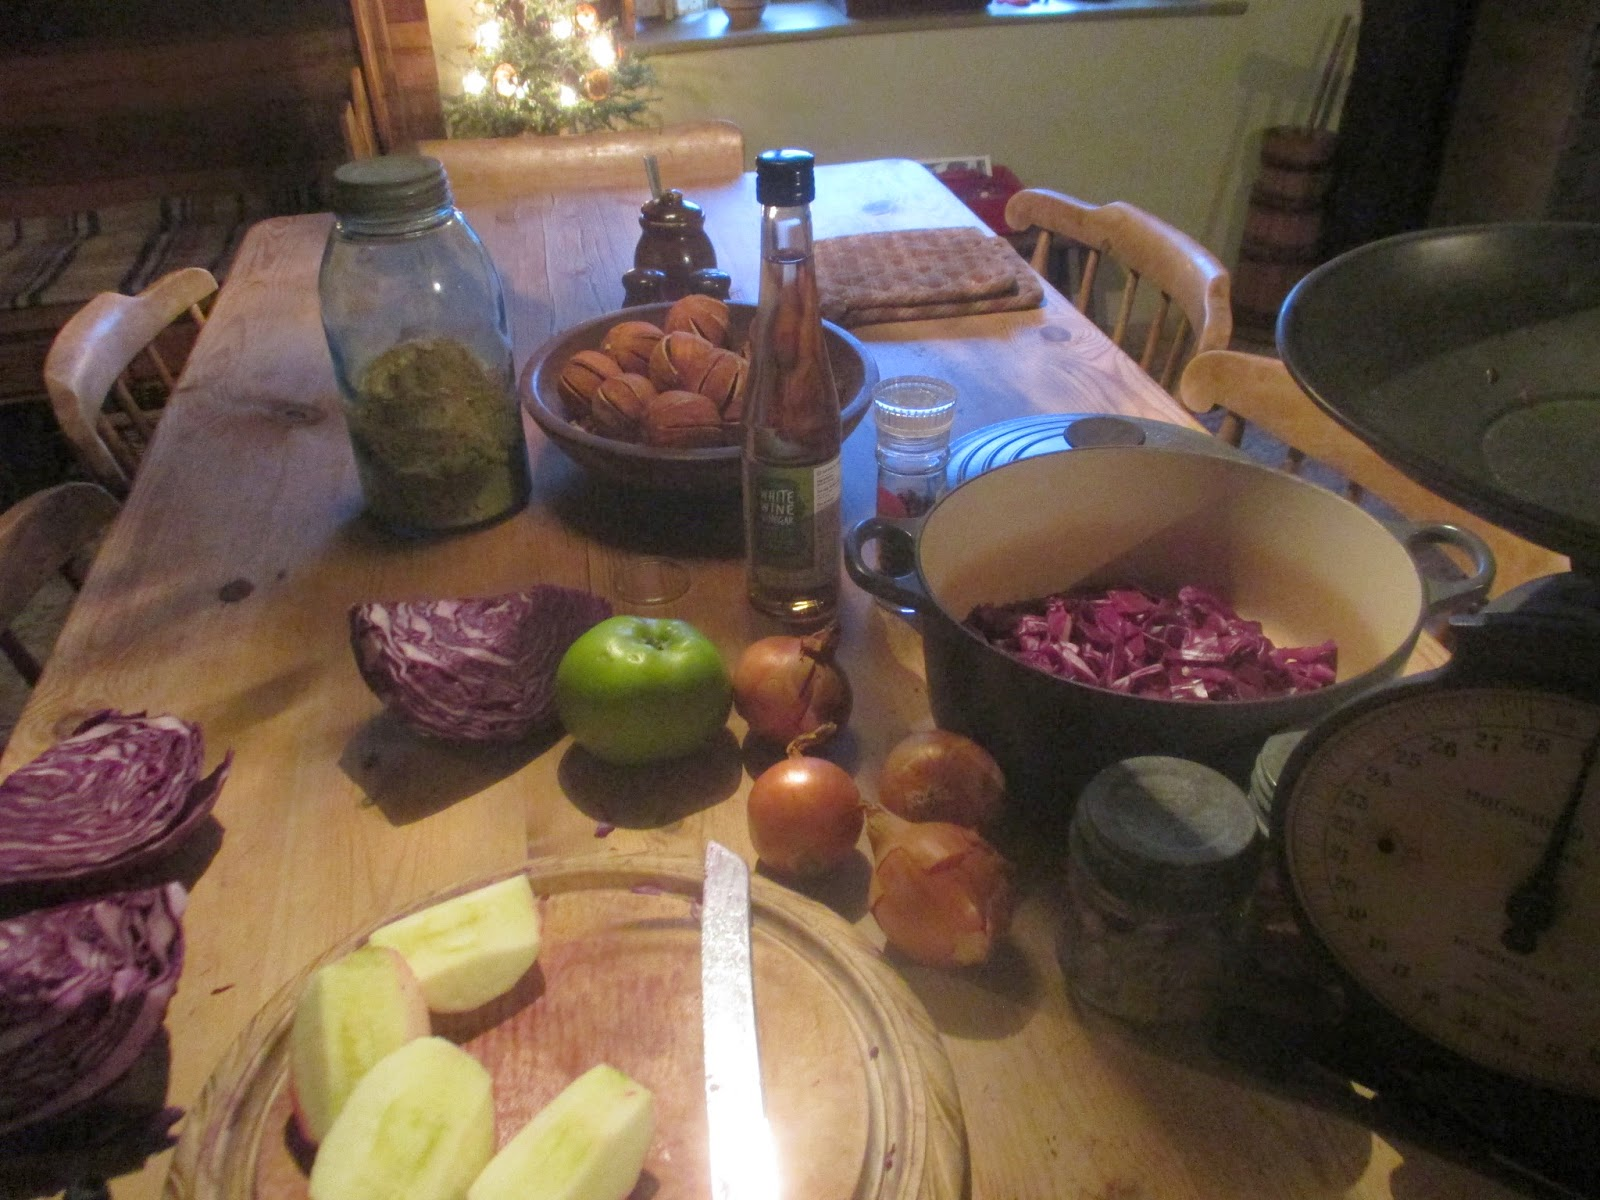 The Wartime Kitchen And Garden Dvd Remembering The Old Ways 2014 11 30